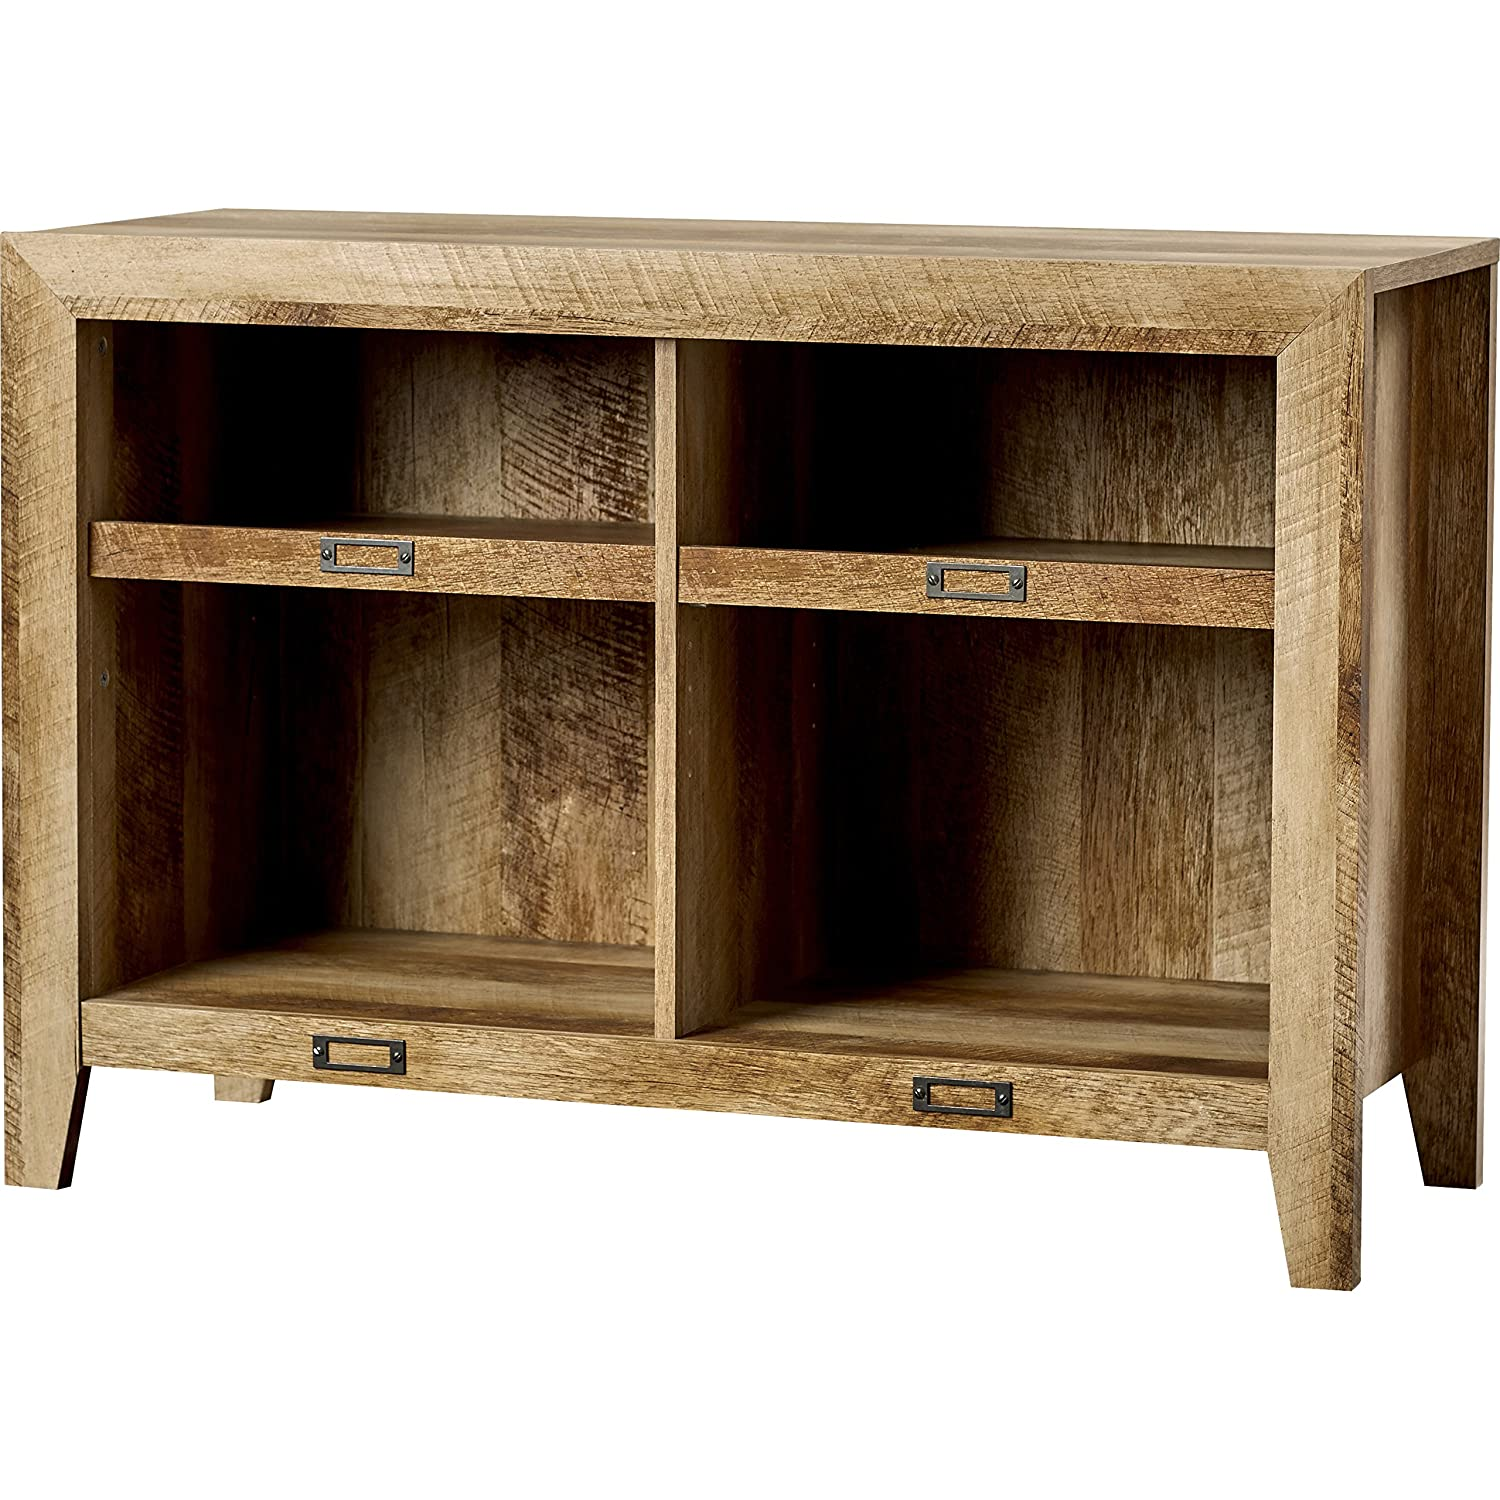 Amazon Rustic Oak TV Stand Farmhouse Style For Your Entertainment Space Country Inspired In Brown Finish Kitchen Dining